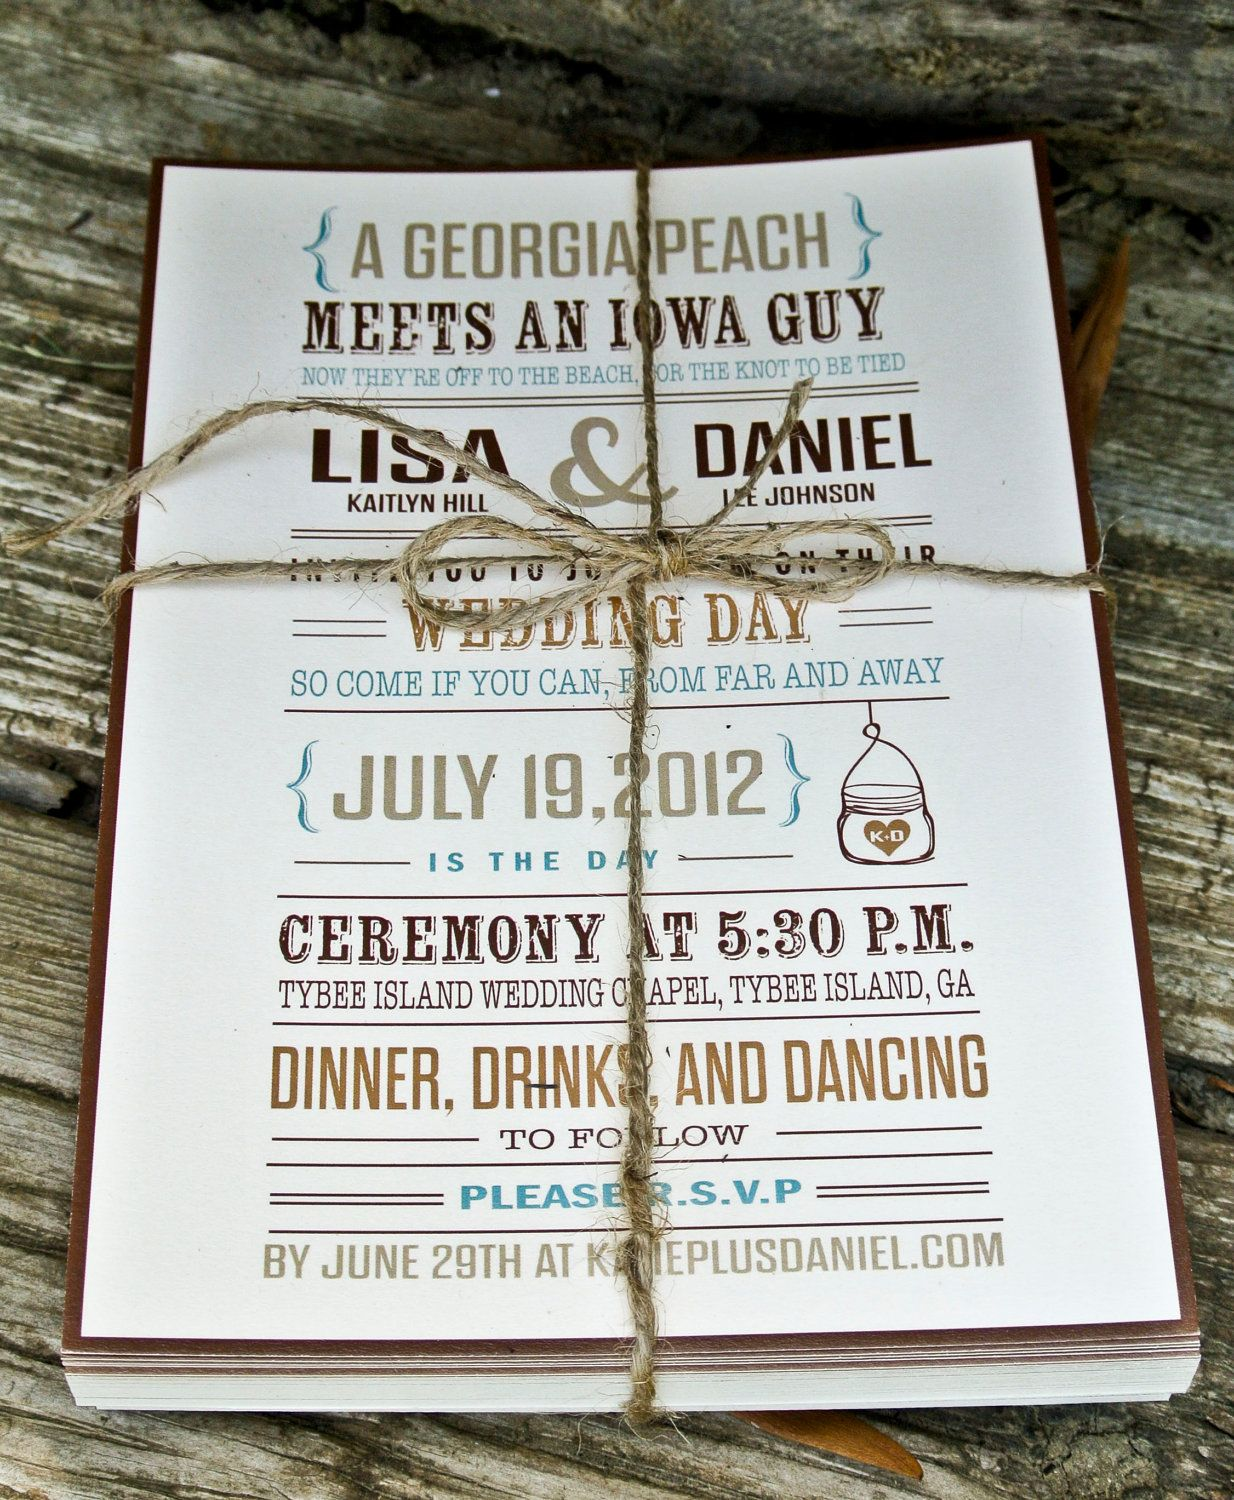 Cute Wedding Invite Wording: I Like The Cute Wording On This Invitation, It's Not Your